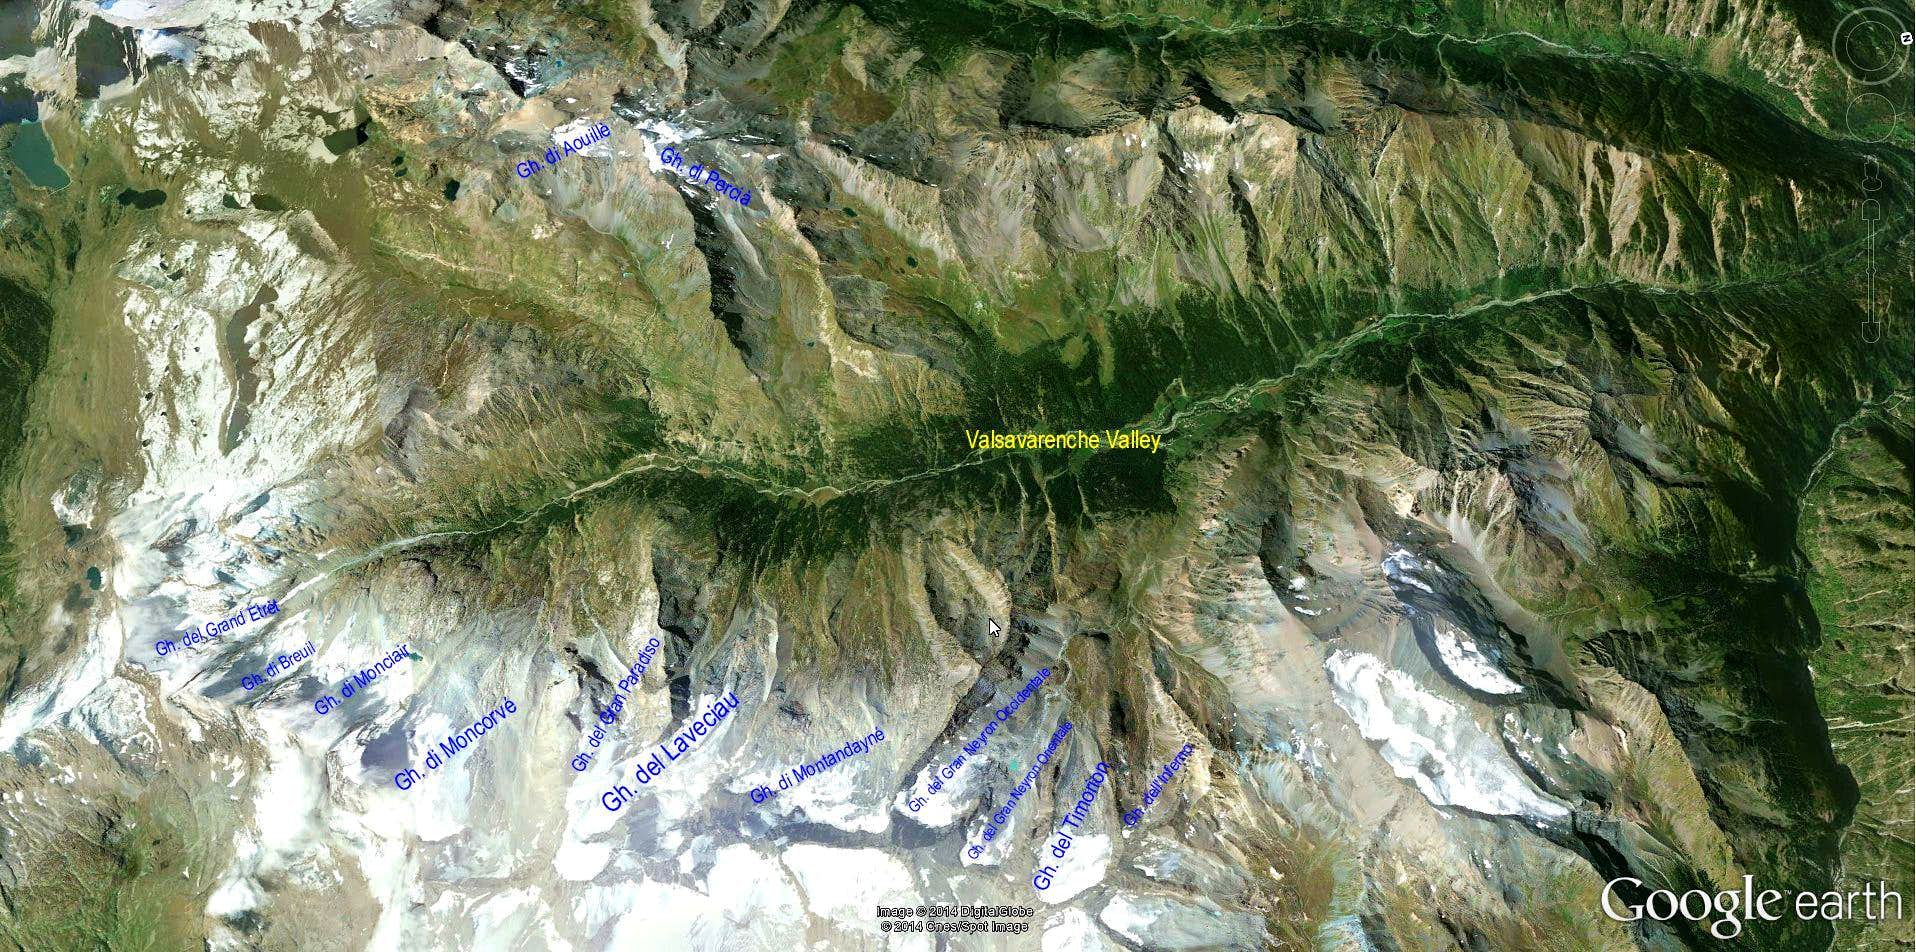 Glaciers of Valsavarenche Valley (Gran Paradiso)